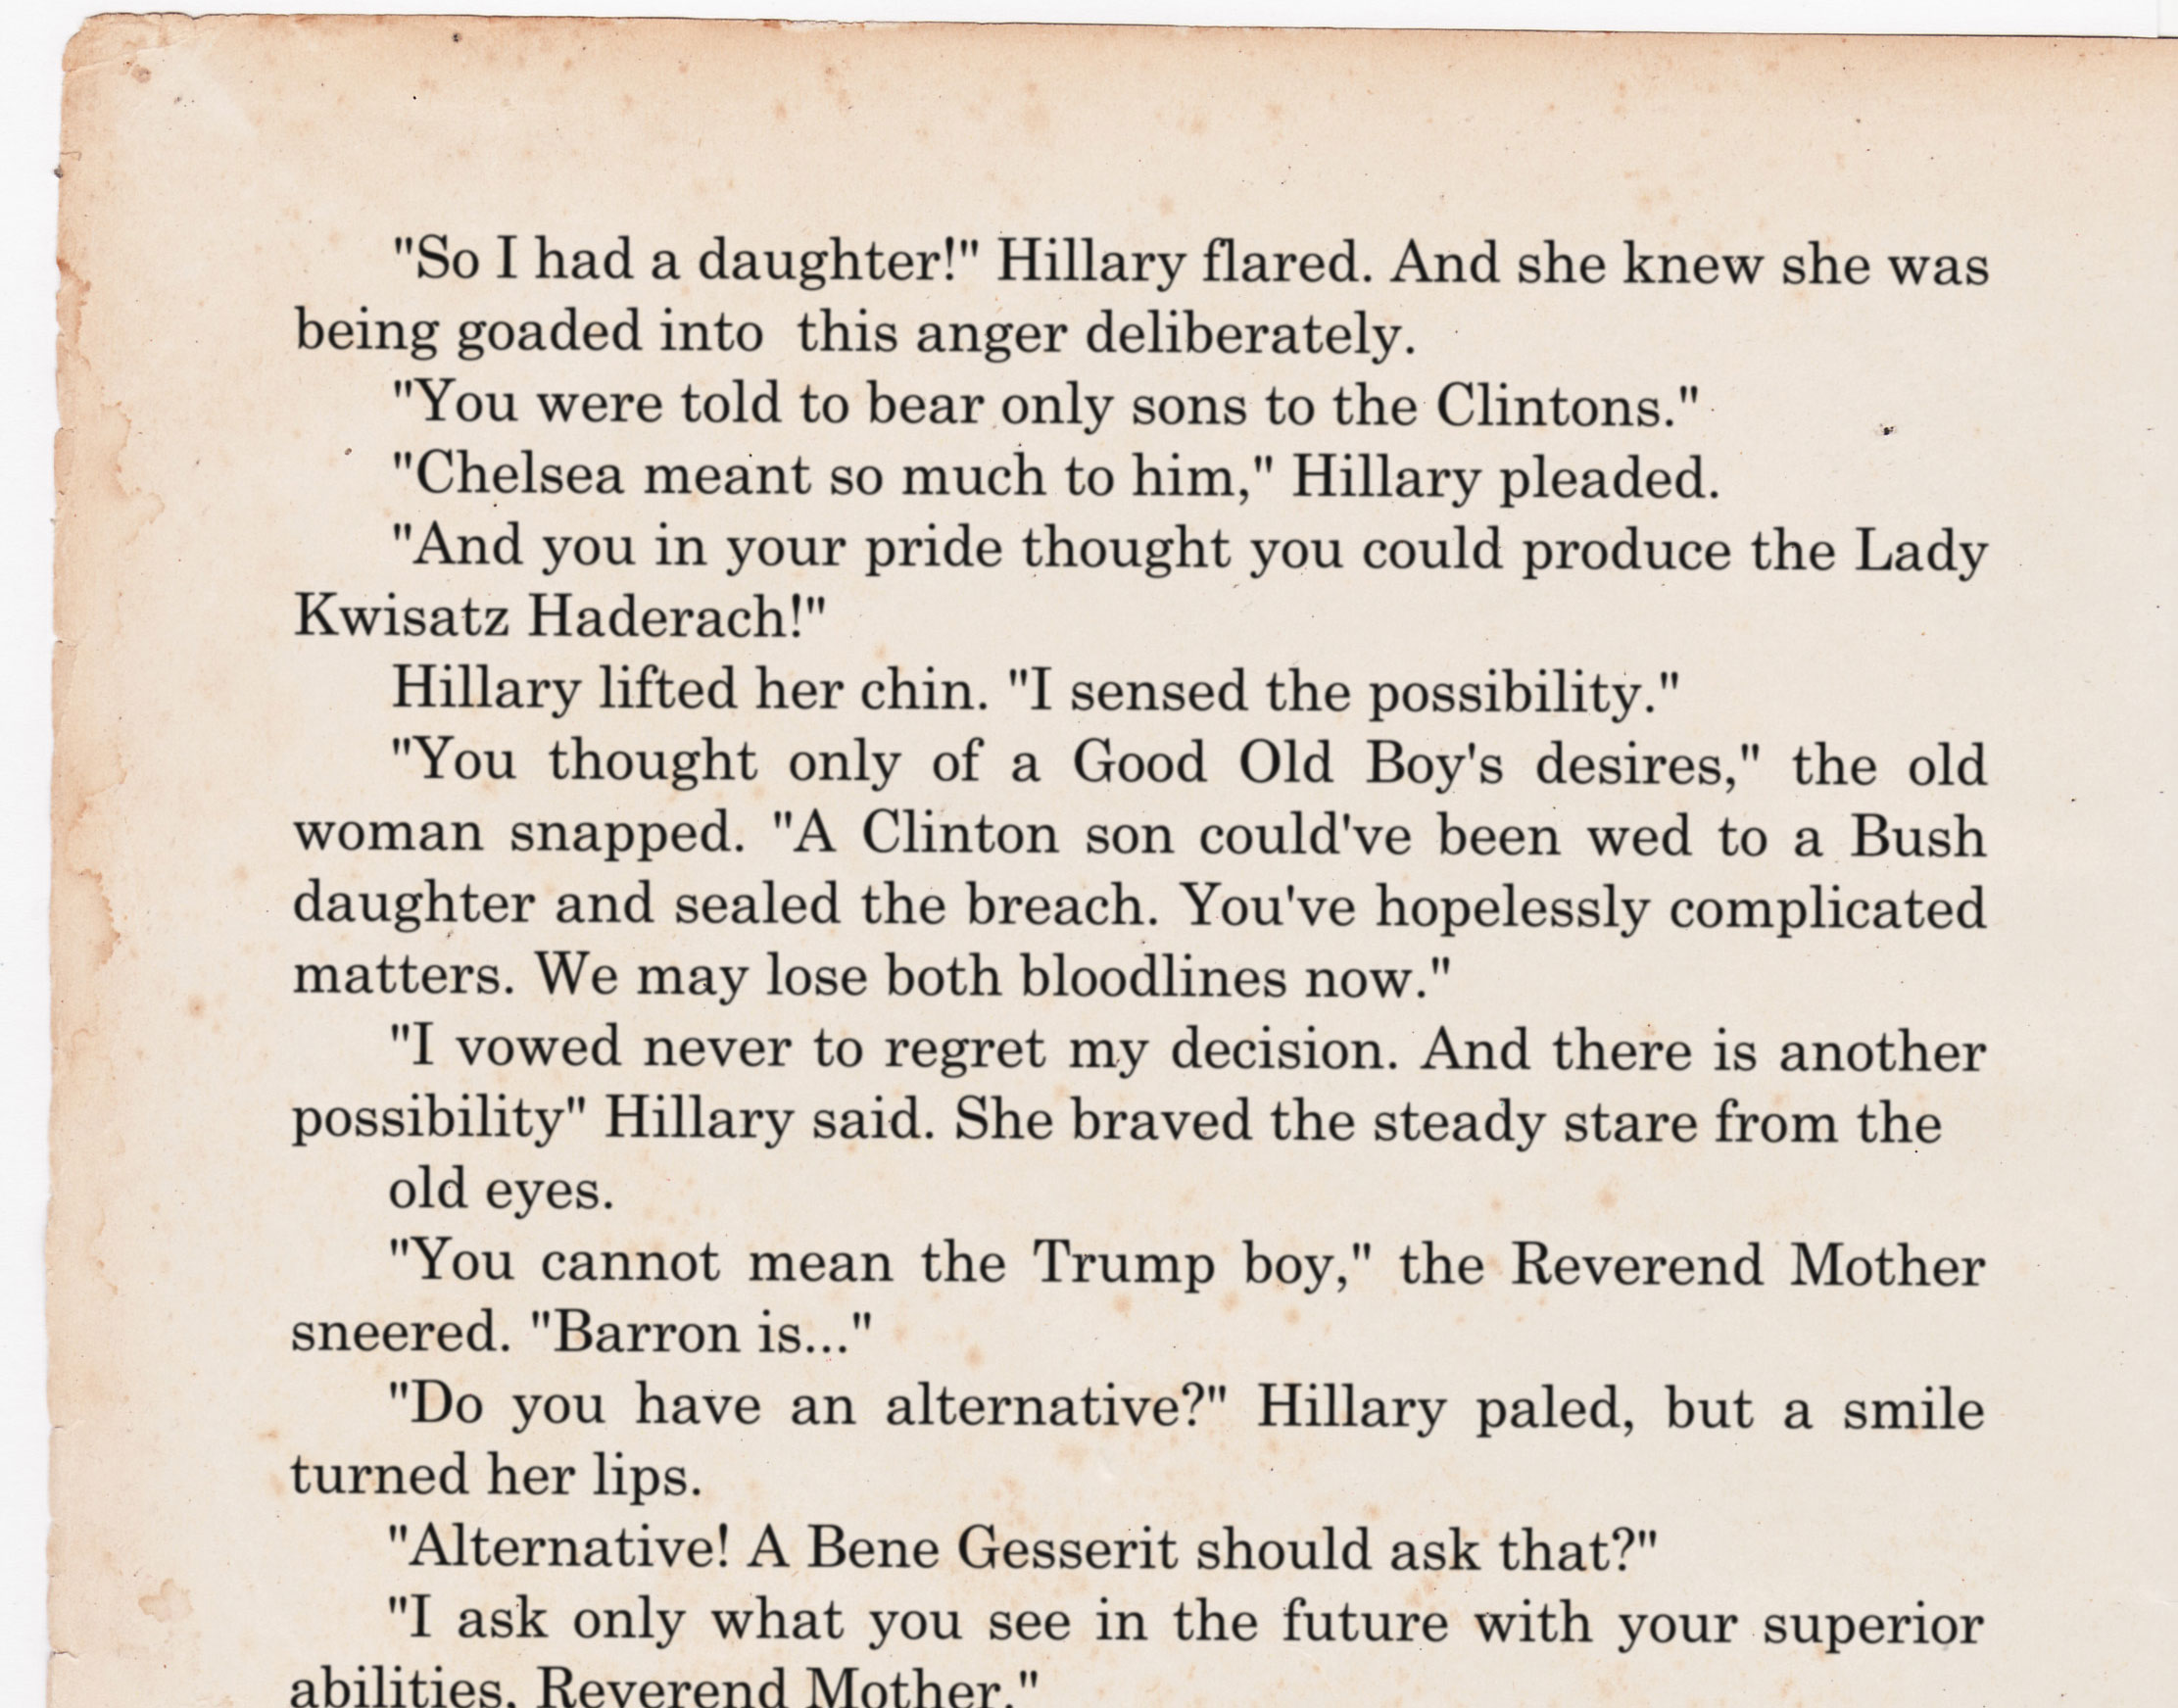 Already regretting assigning the Chelsea Clinton story to Frank Herbert